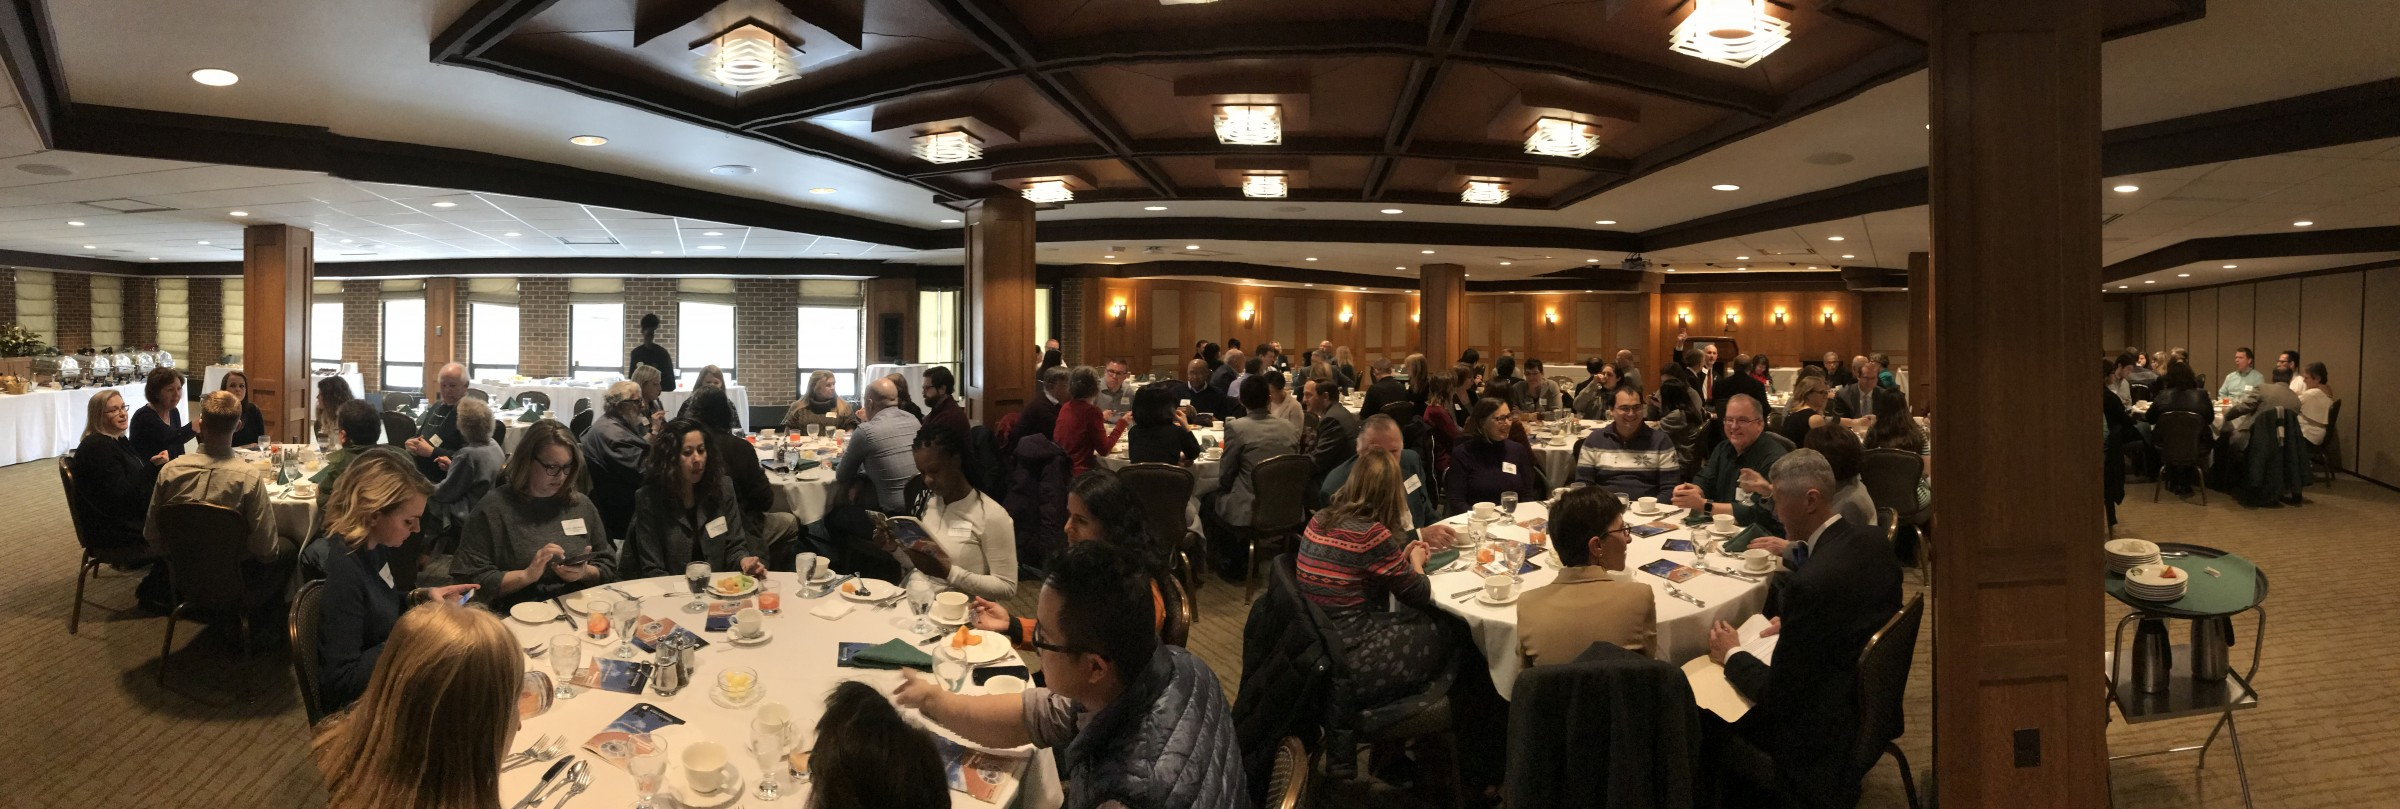 More than 100 members of the College of Engineering attended this year's Engineering Awards Luncheon at the University Club. The event was emceed by Associate Dean Tom Voice.